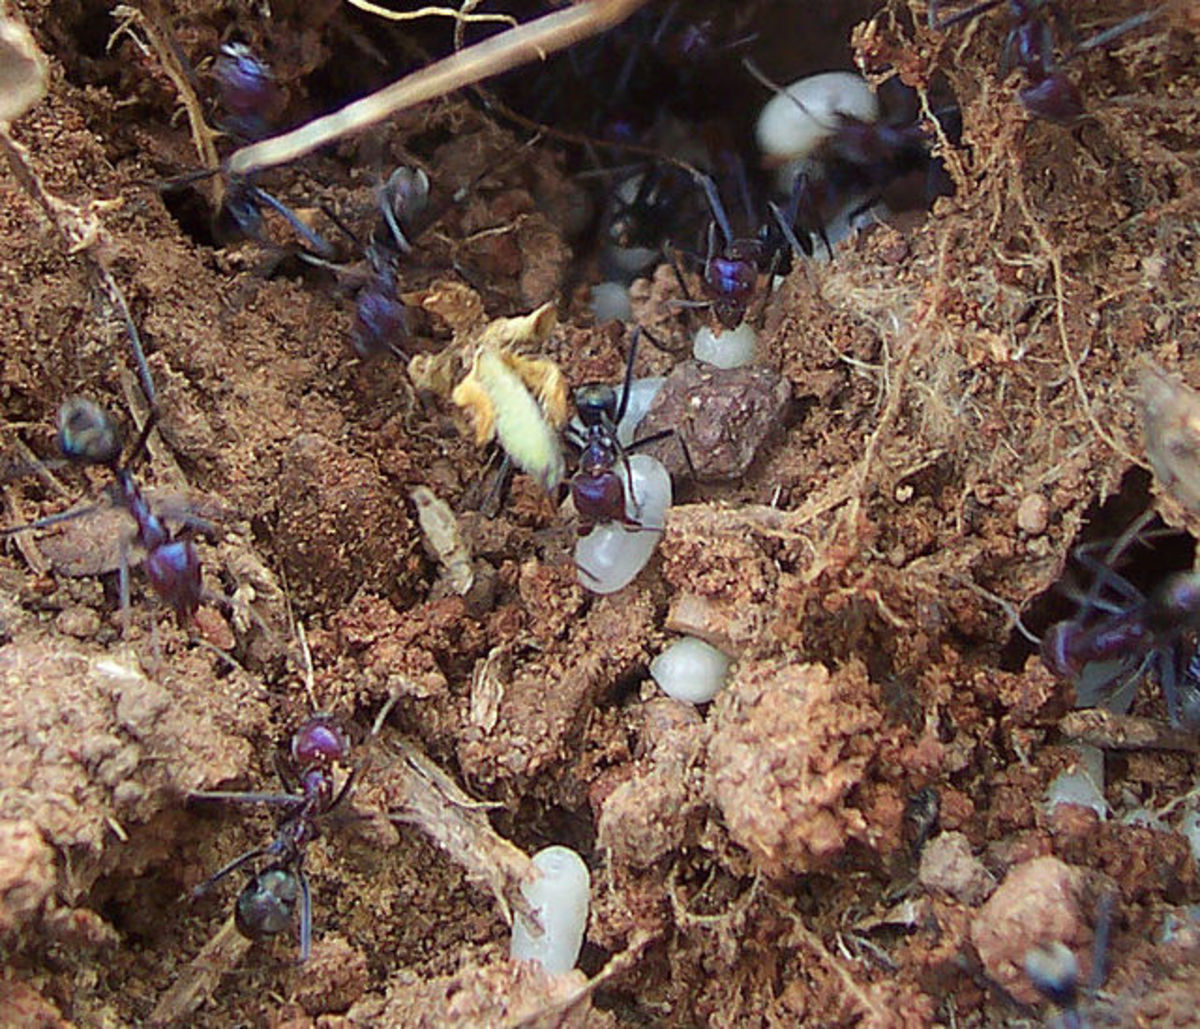 Ants caring for their eggs